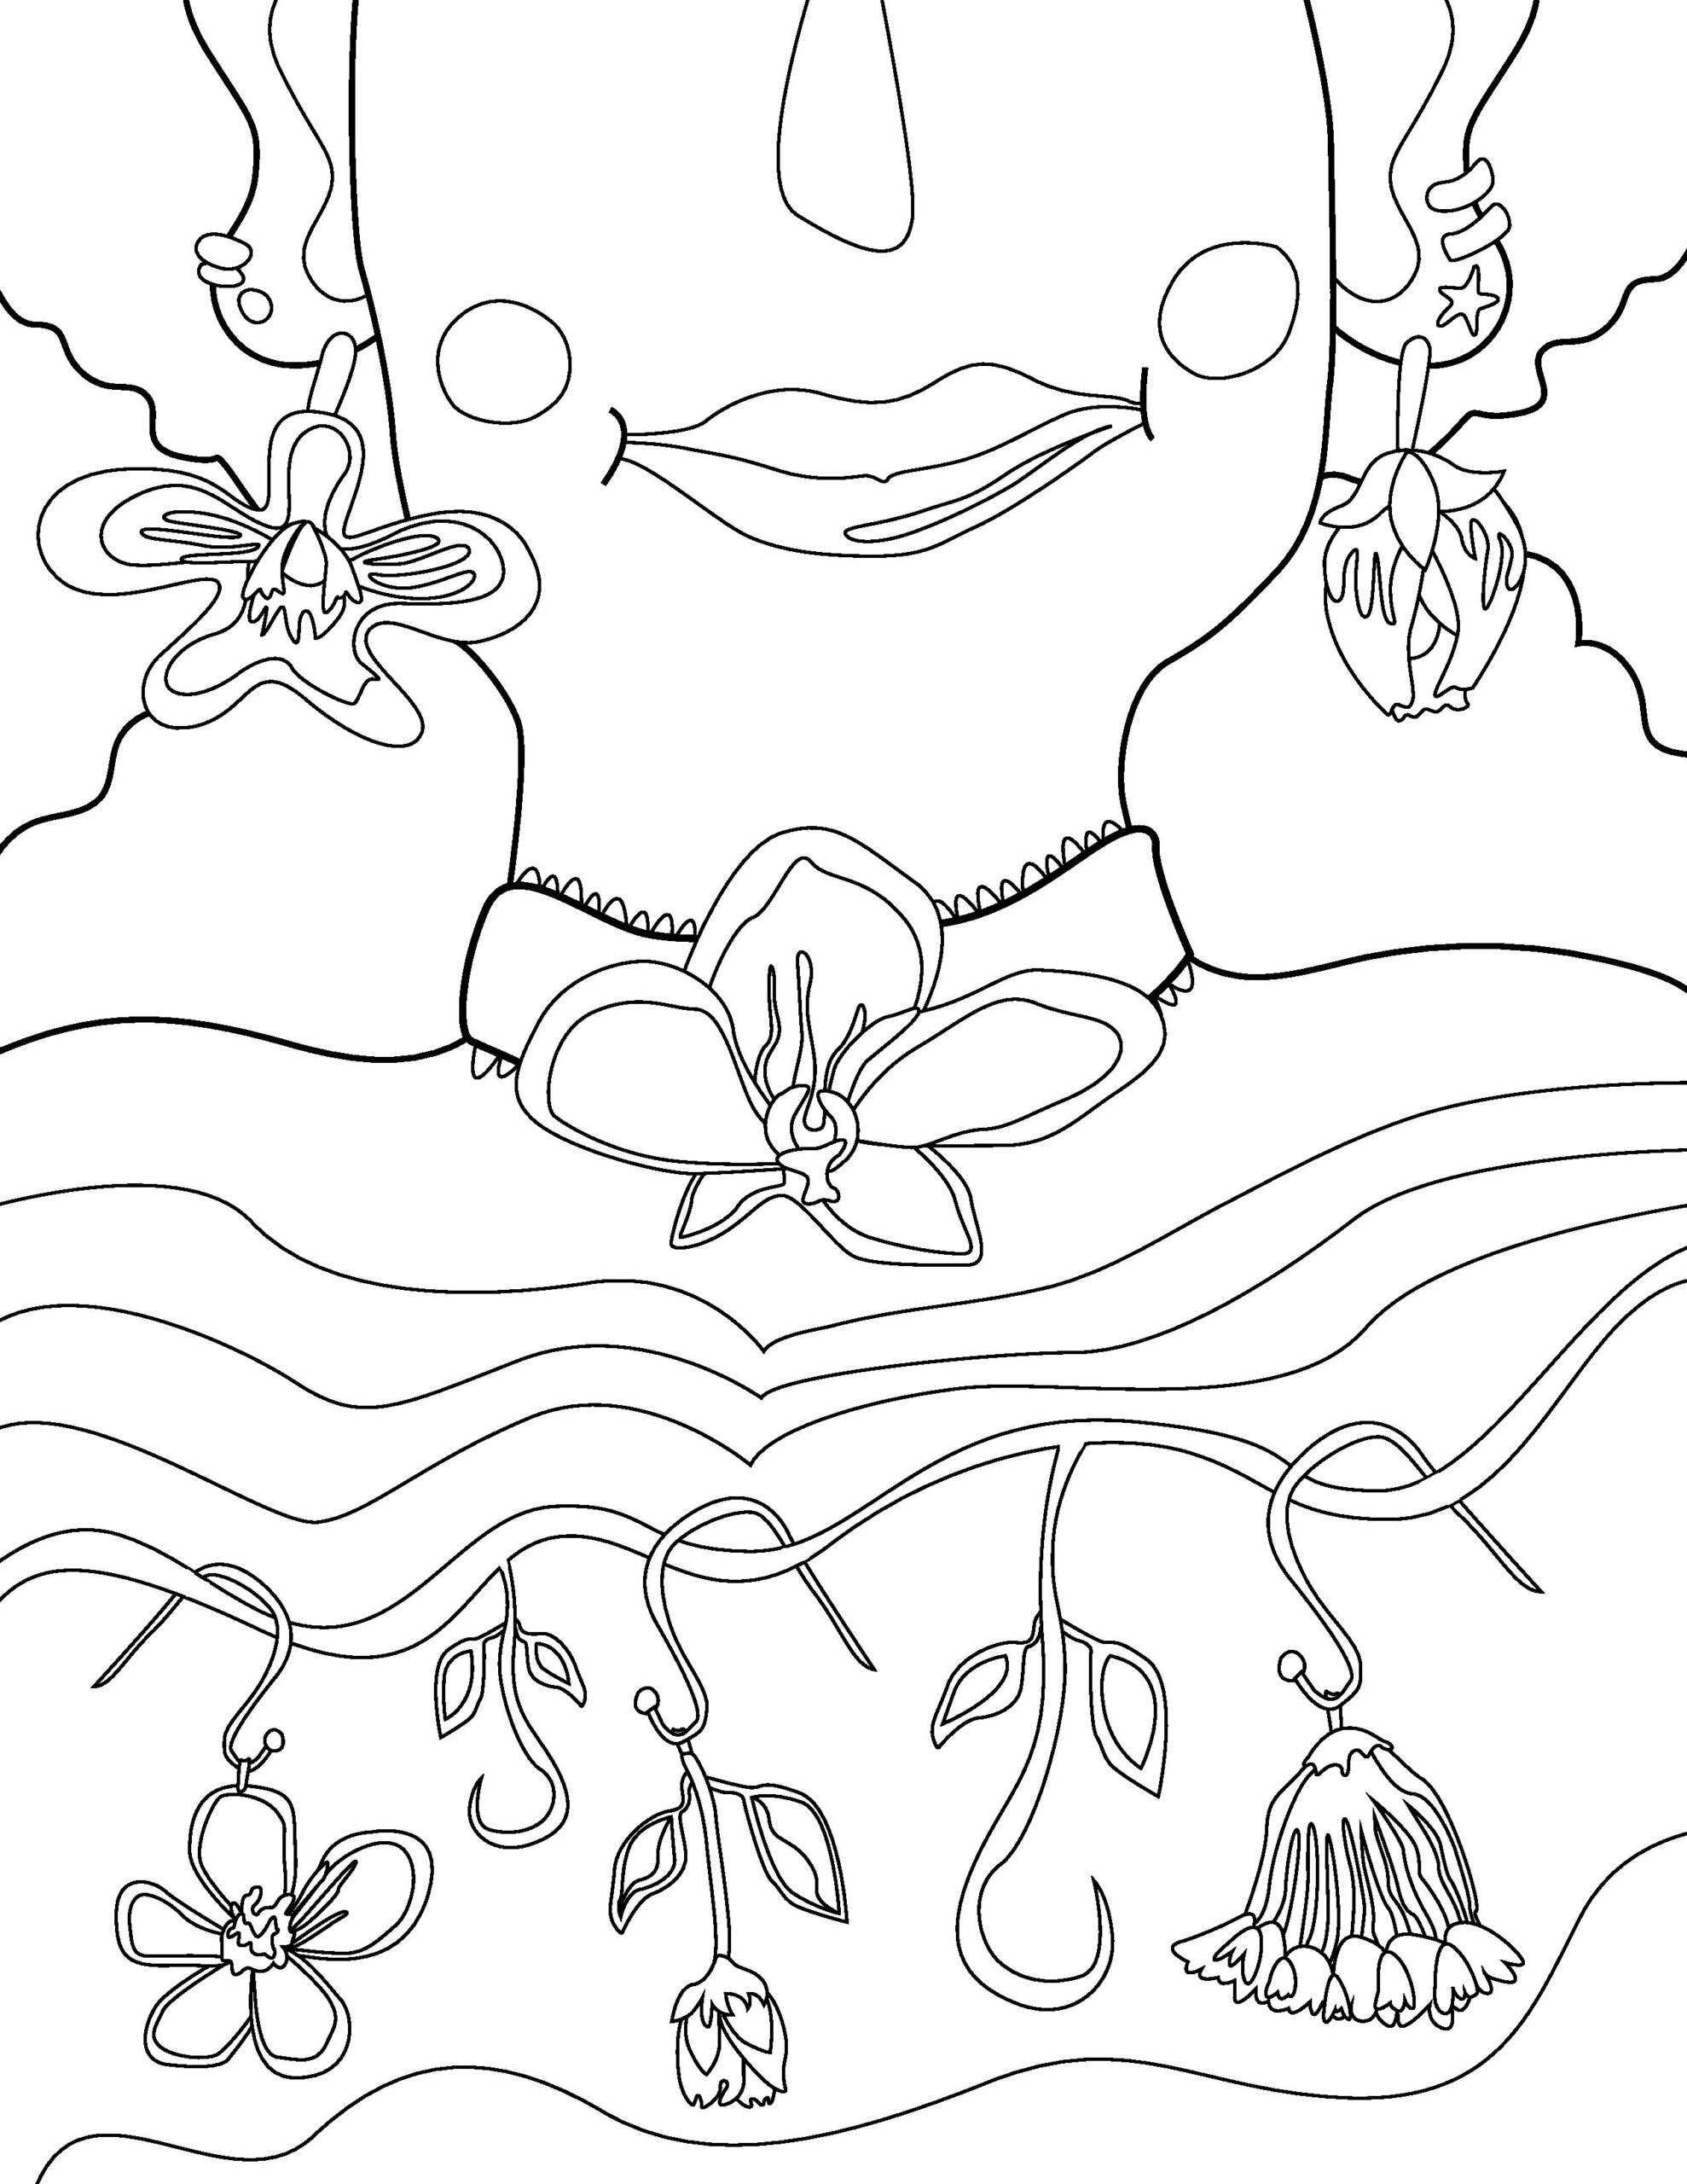 Colouring page illustration close up on a figure's upper chest, neck and lower face. The figure wears floral jewelry.